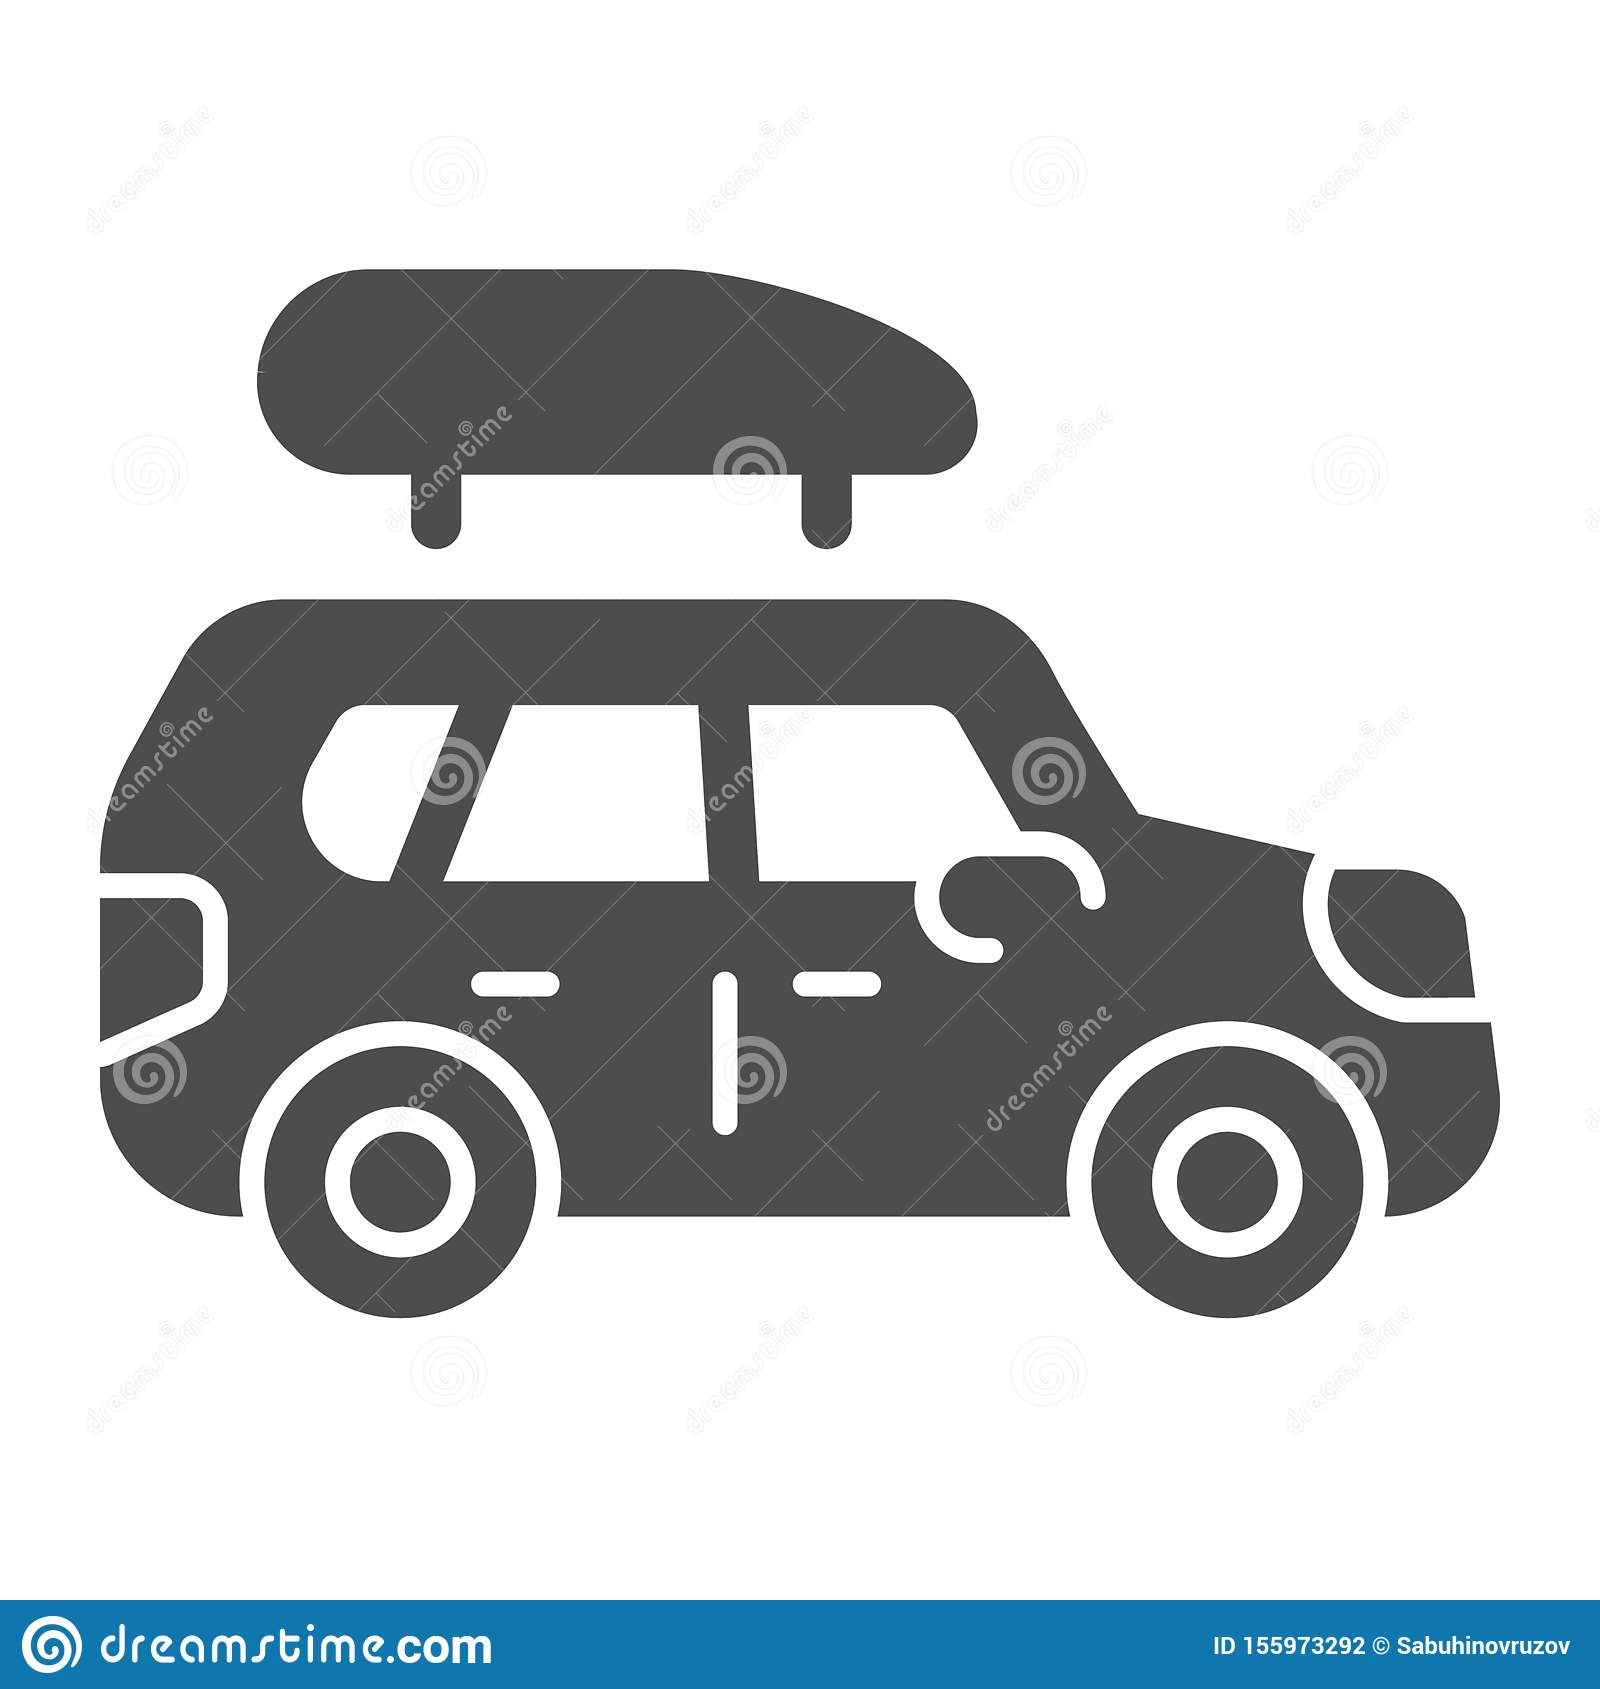 Boat trailer solid icon. Automobile with boat vector illustration isolated on white. Truck glyph style design, designed